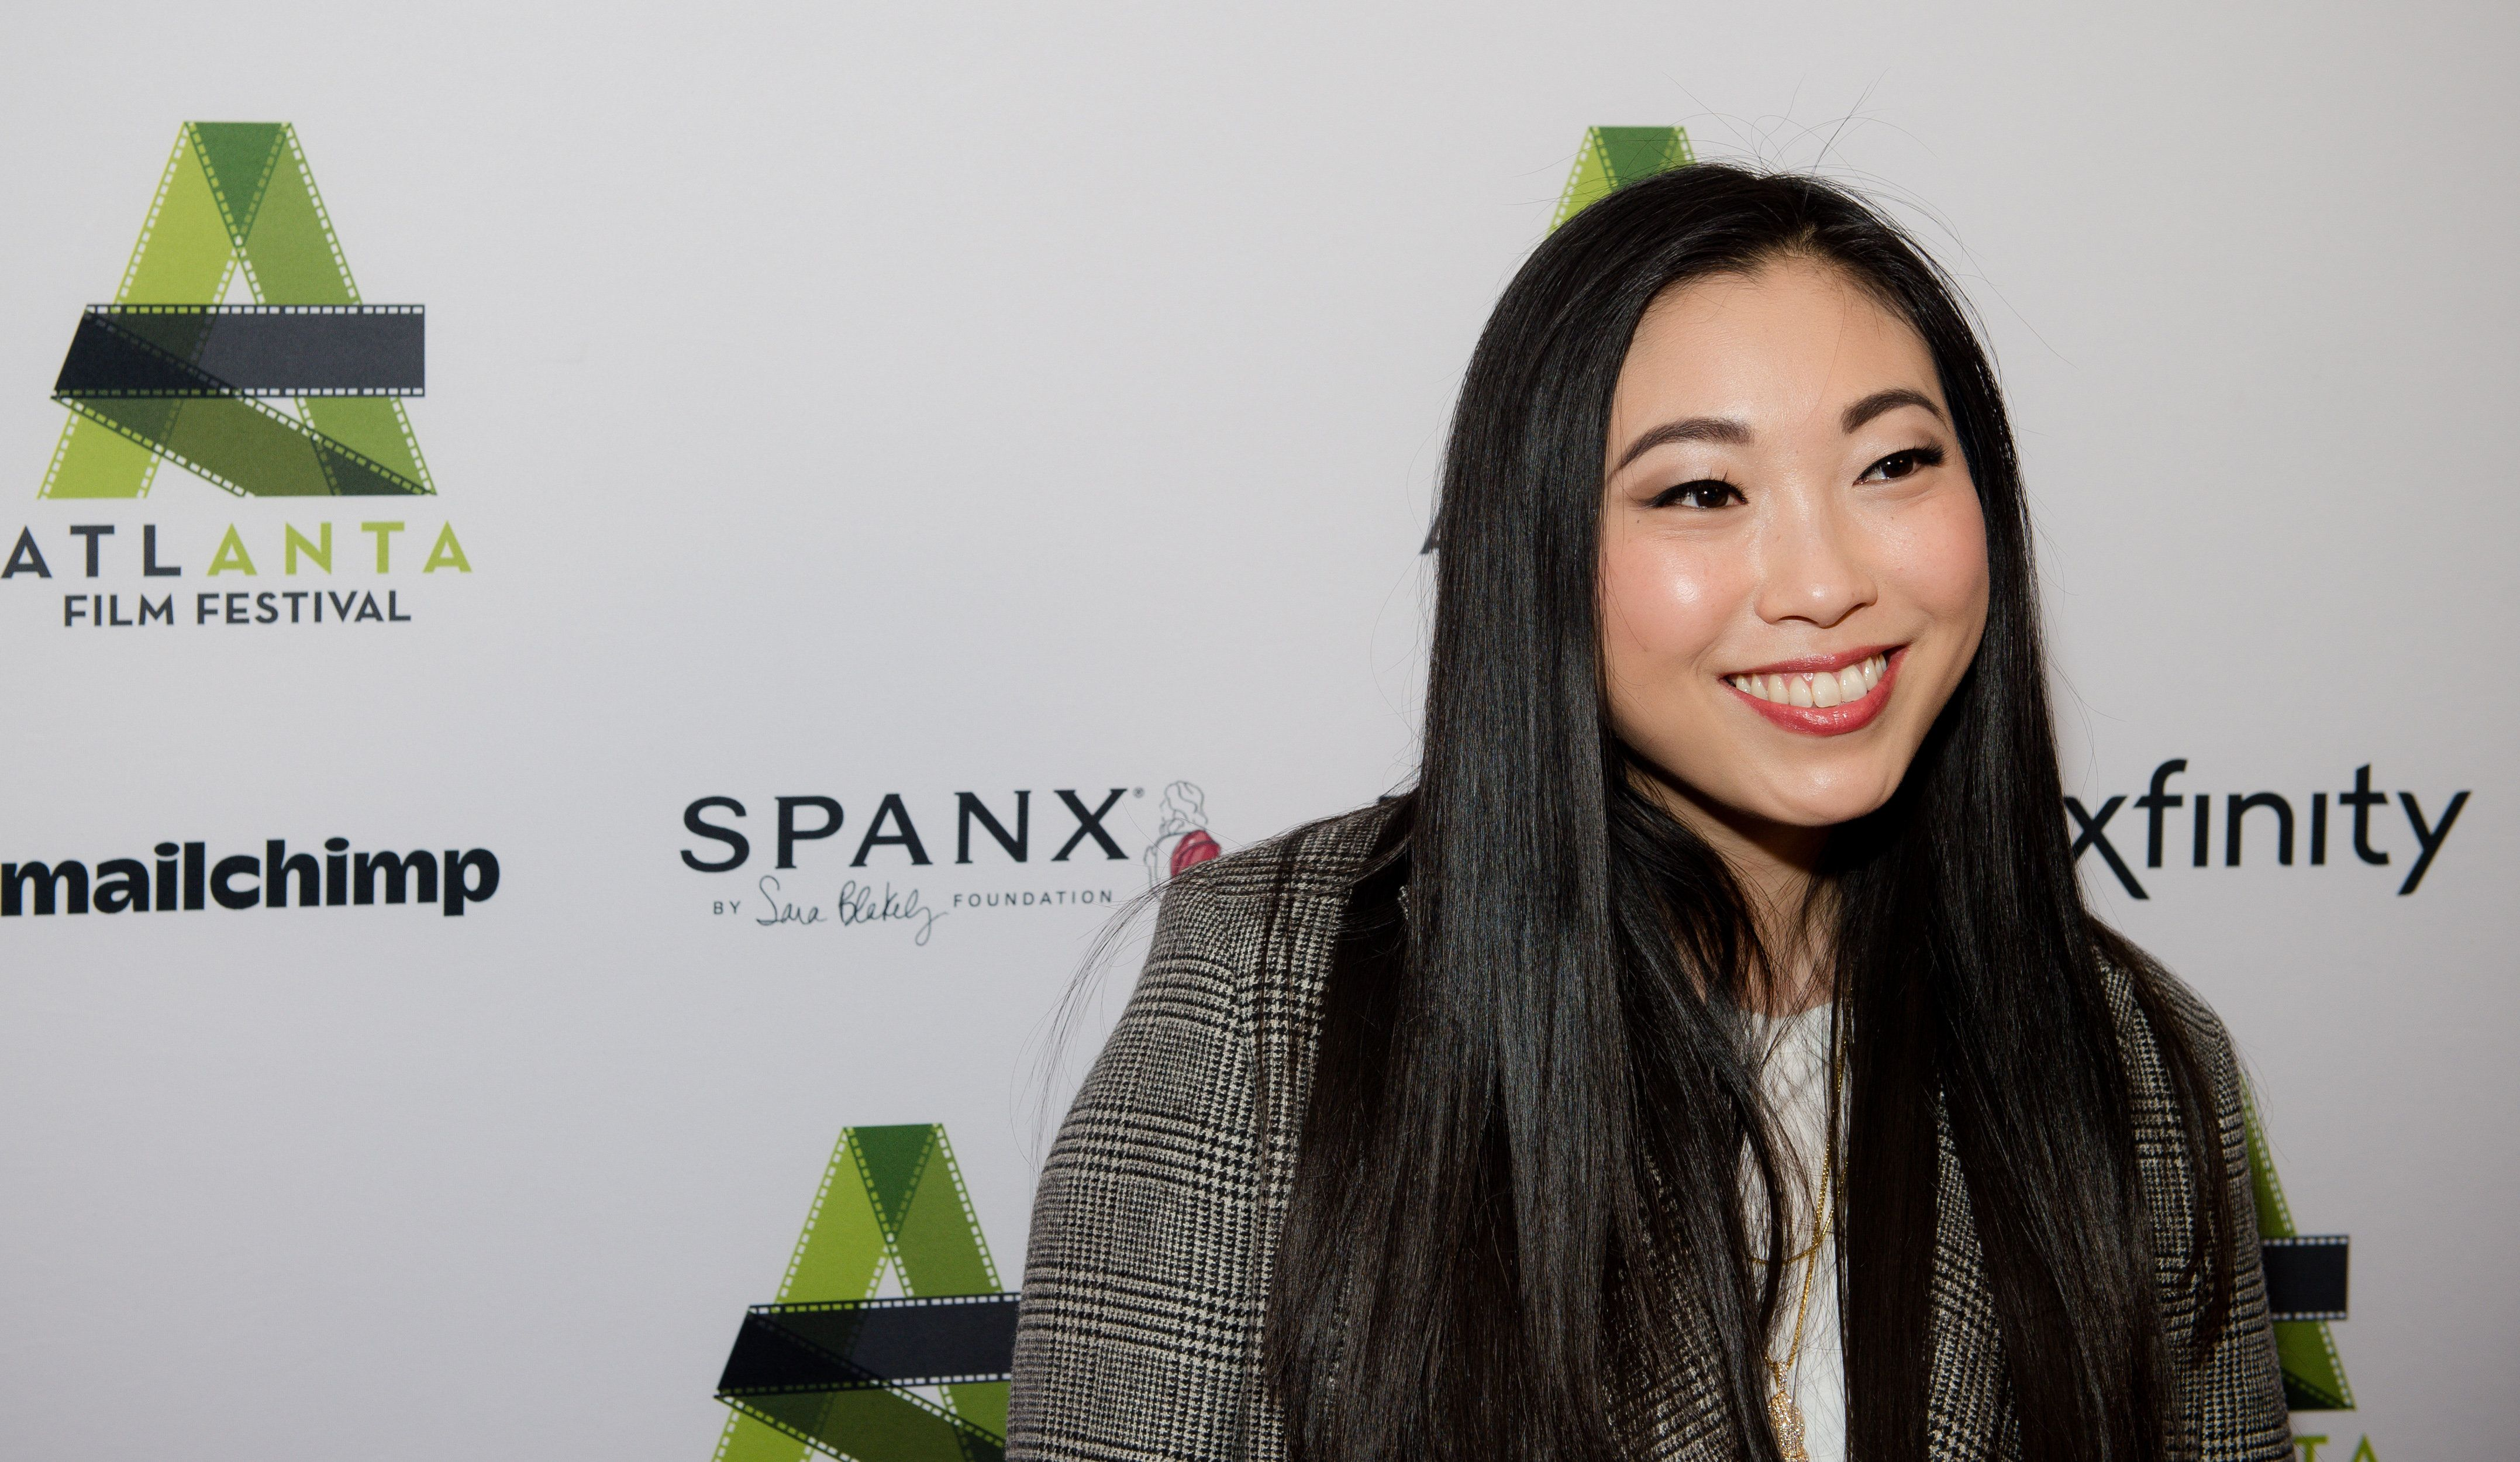 ATLANTA, GEORGIA - APRIL 05: Actress Awkwafina attends the Atlanta Film Festival opening night red carpet for 'The Farewell' at Plaza Theatre on April 05, 2019 in Atlanta, Georgia. (Photo by Marcus Ingram/Getty Images)